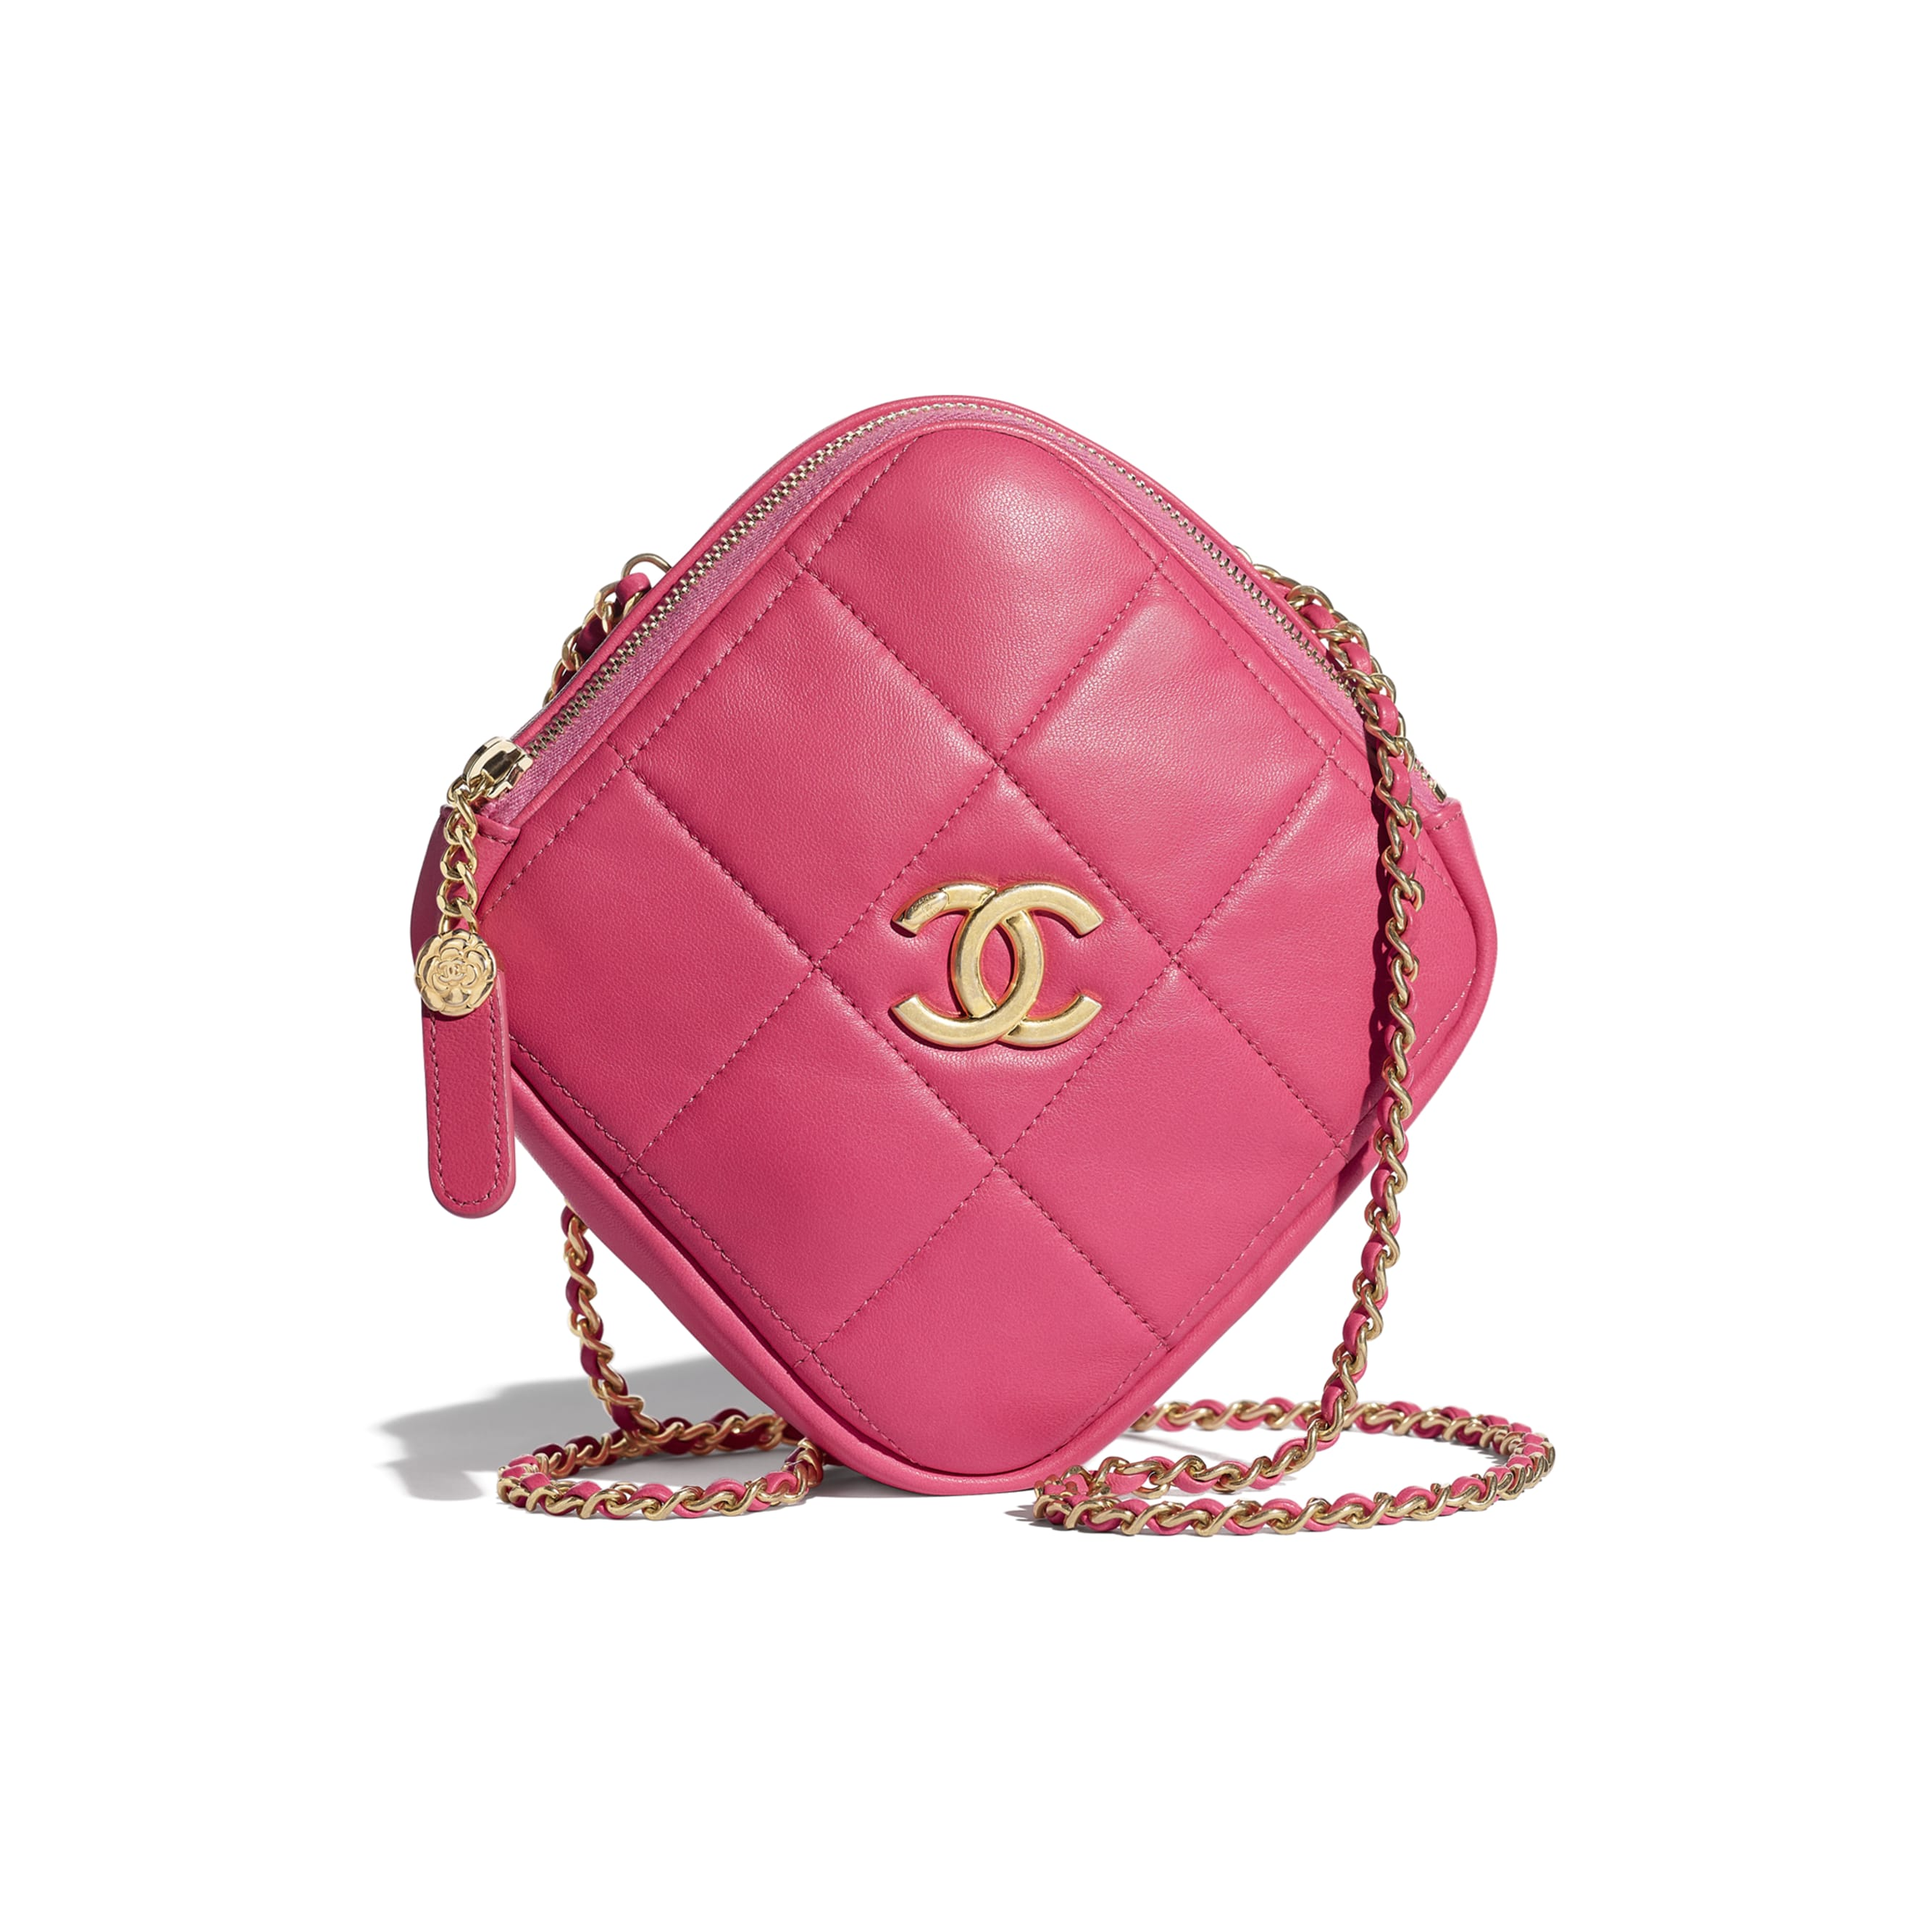 Small Diamond Bag - Pink - Lambskin - CHANEL - Default view - see standard sized version